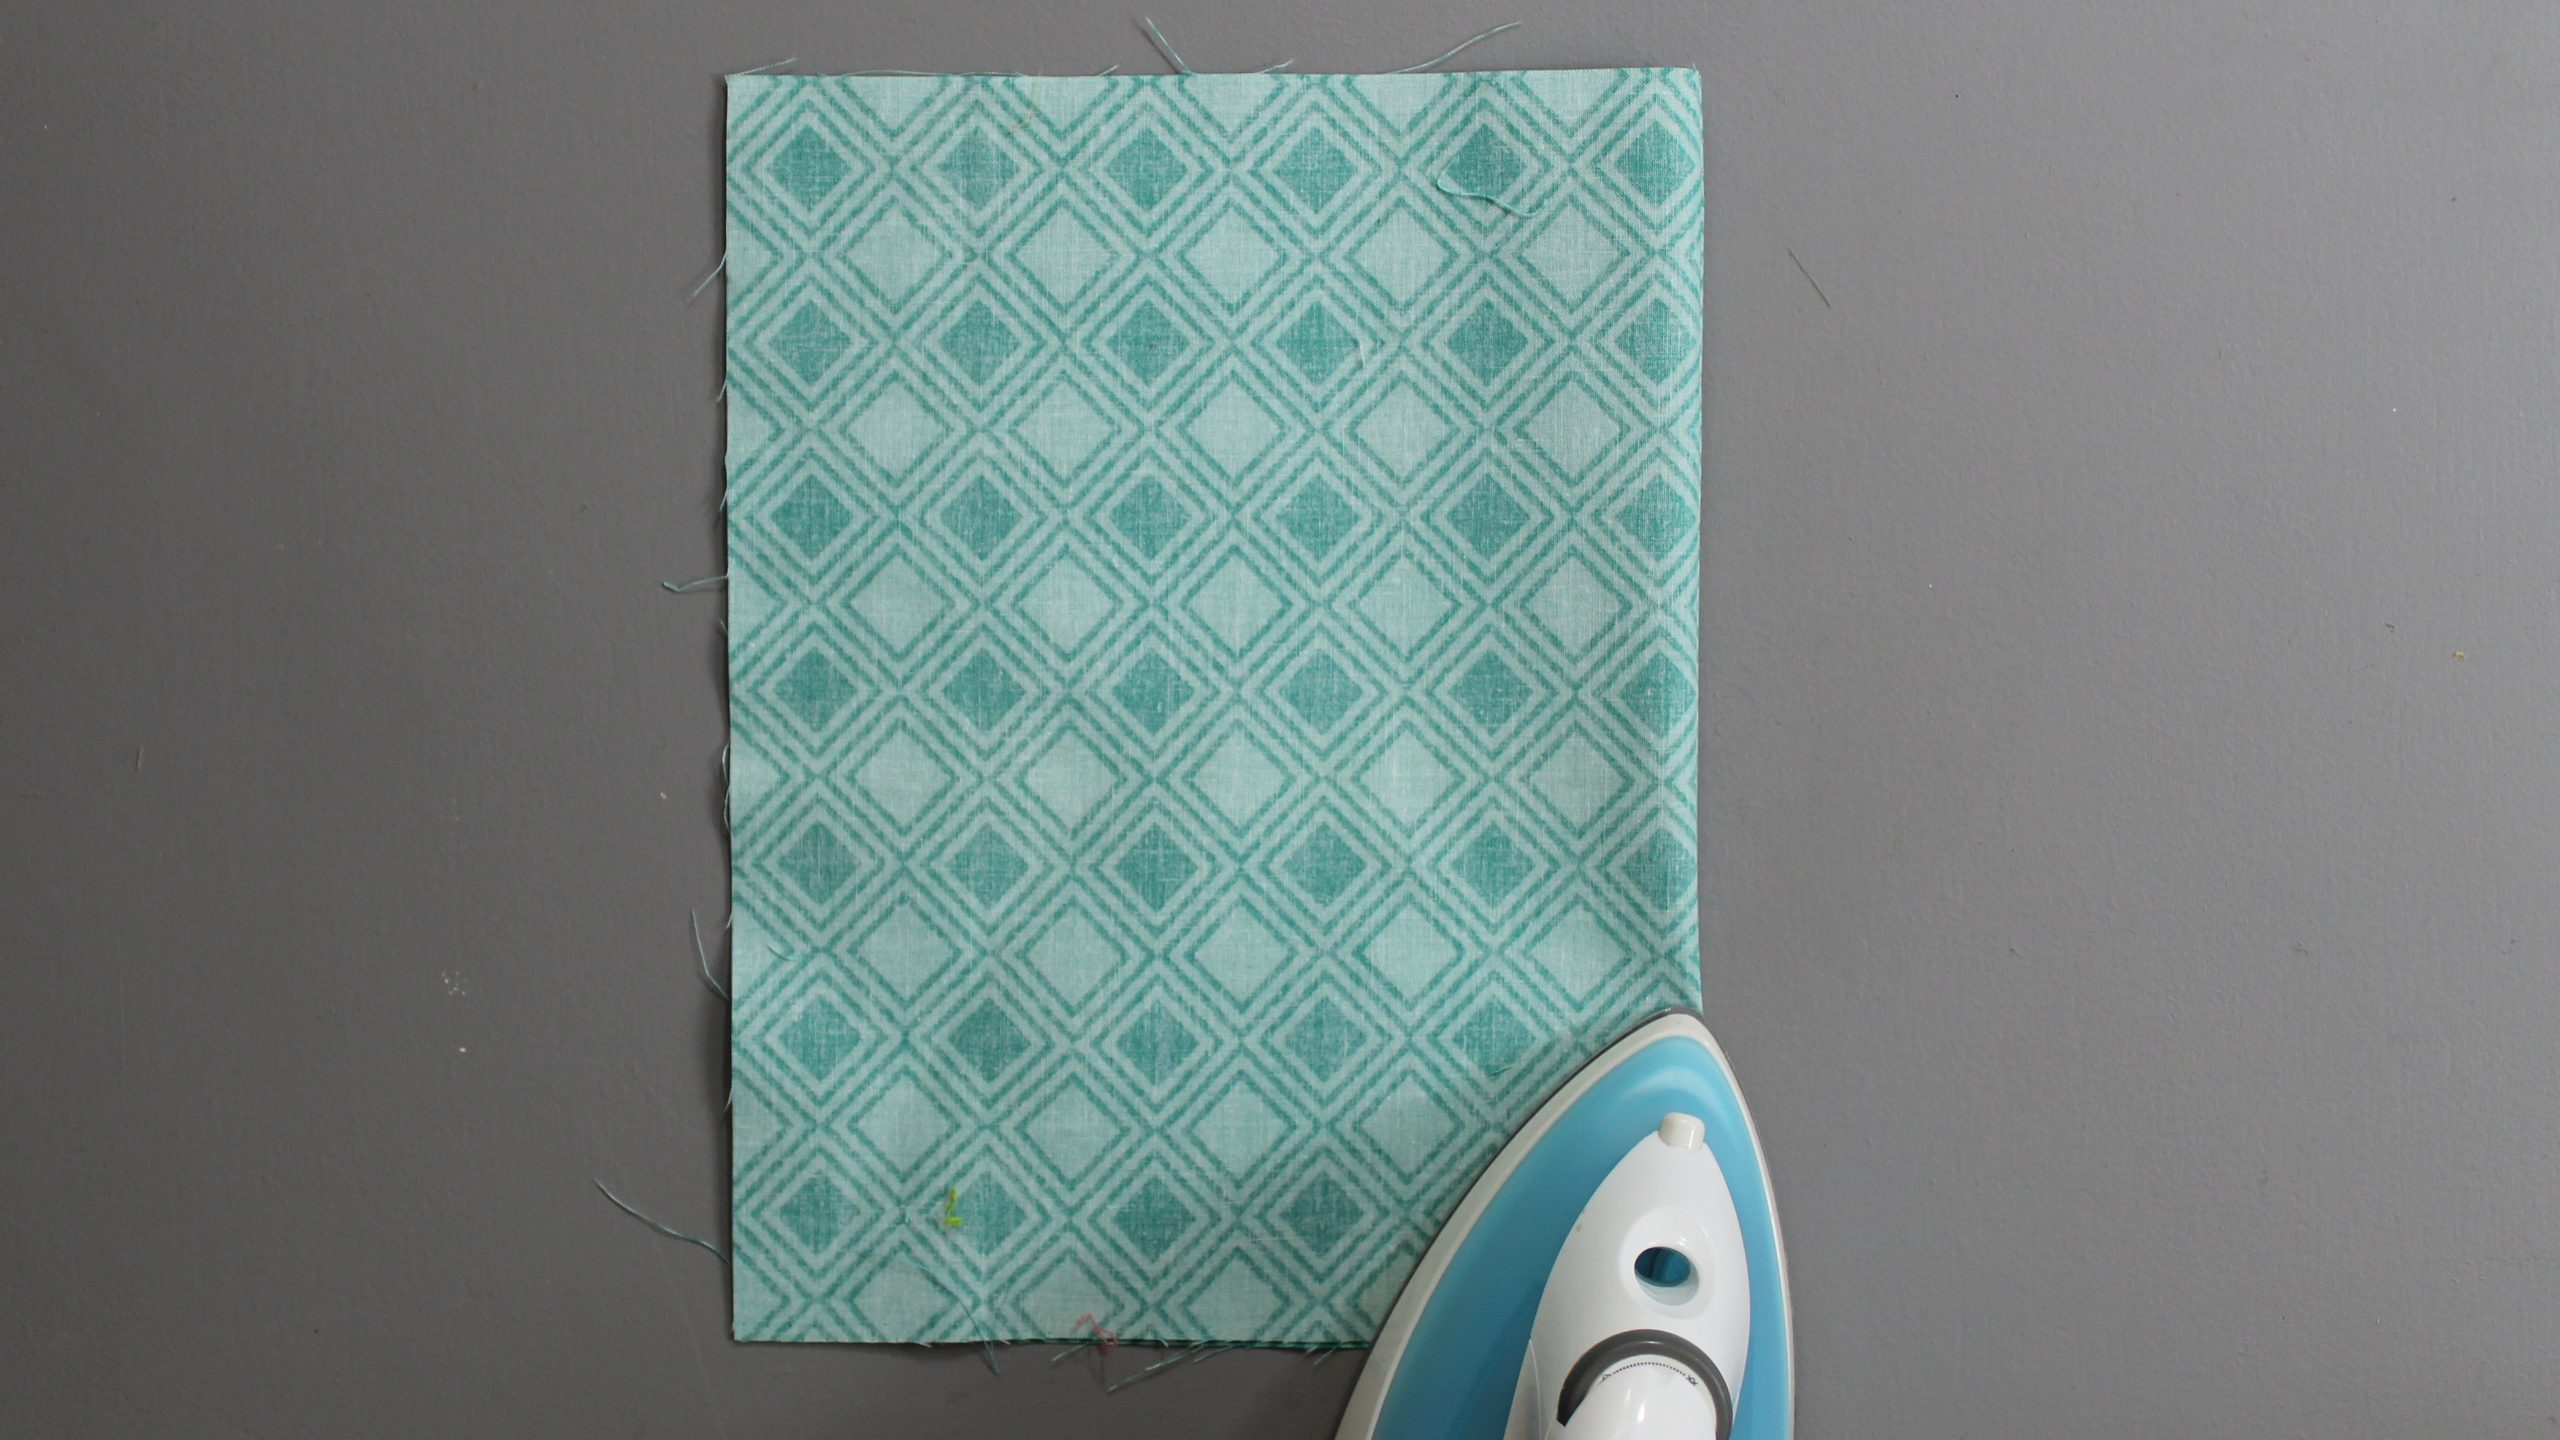 Ironing the fold line of the fabric